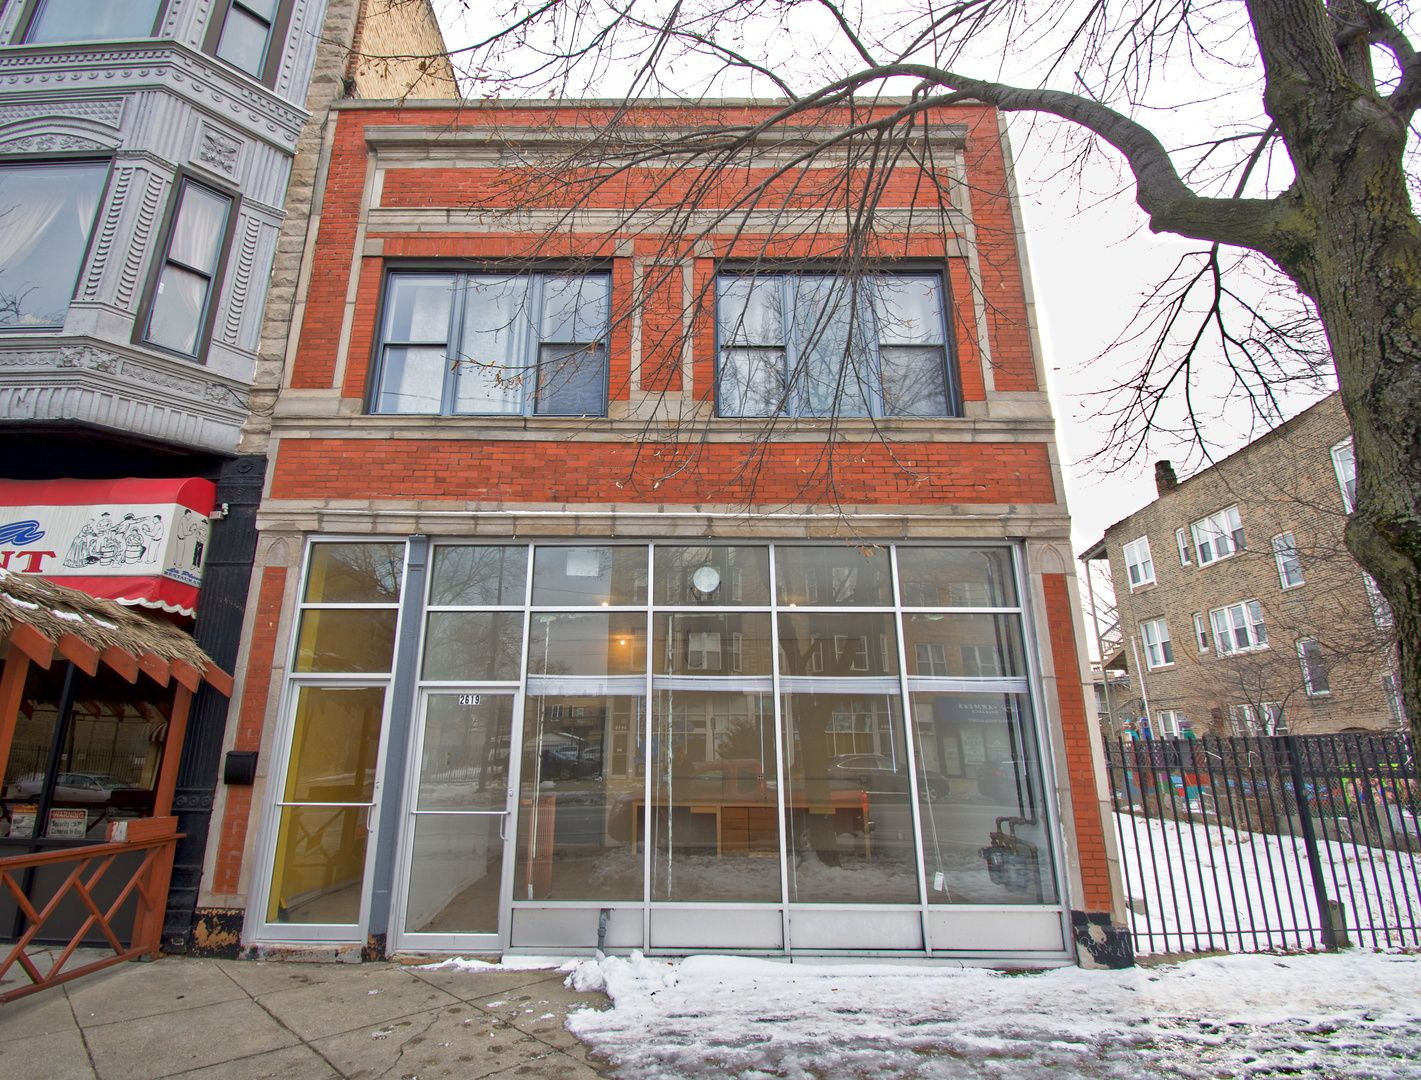 Main Photo: 2619 W Division Street Unit C-1 in Chicago: CHI - West Town Commercial Lease for lease ()  : MLS®# 10939044